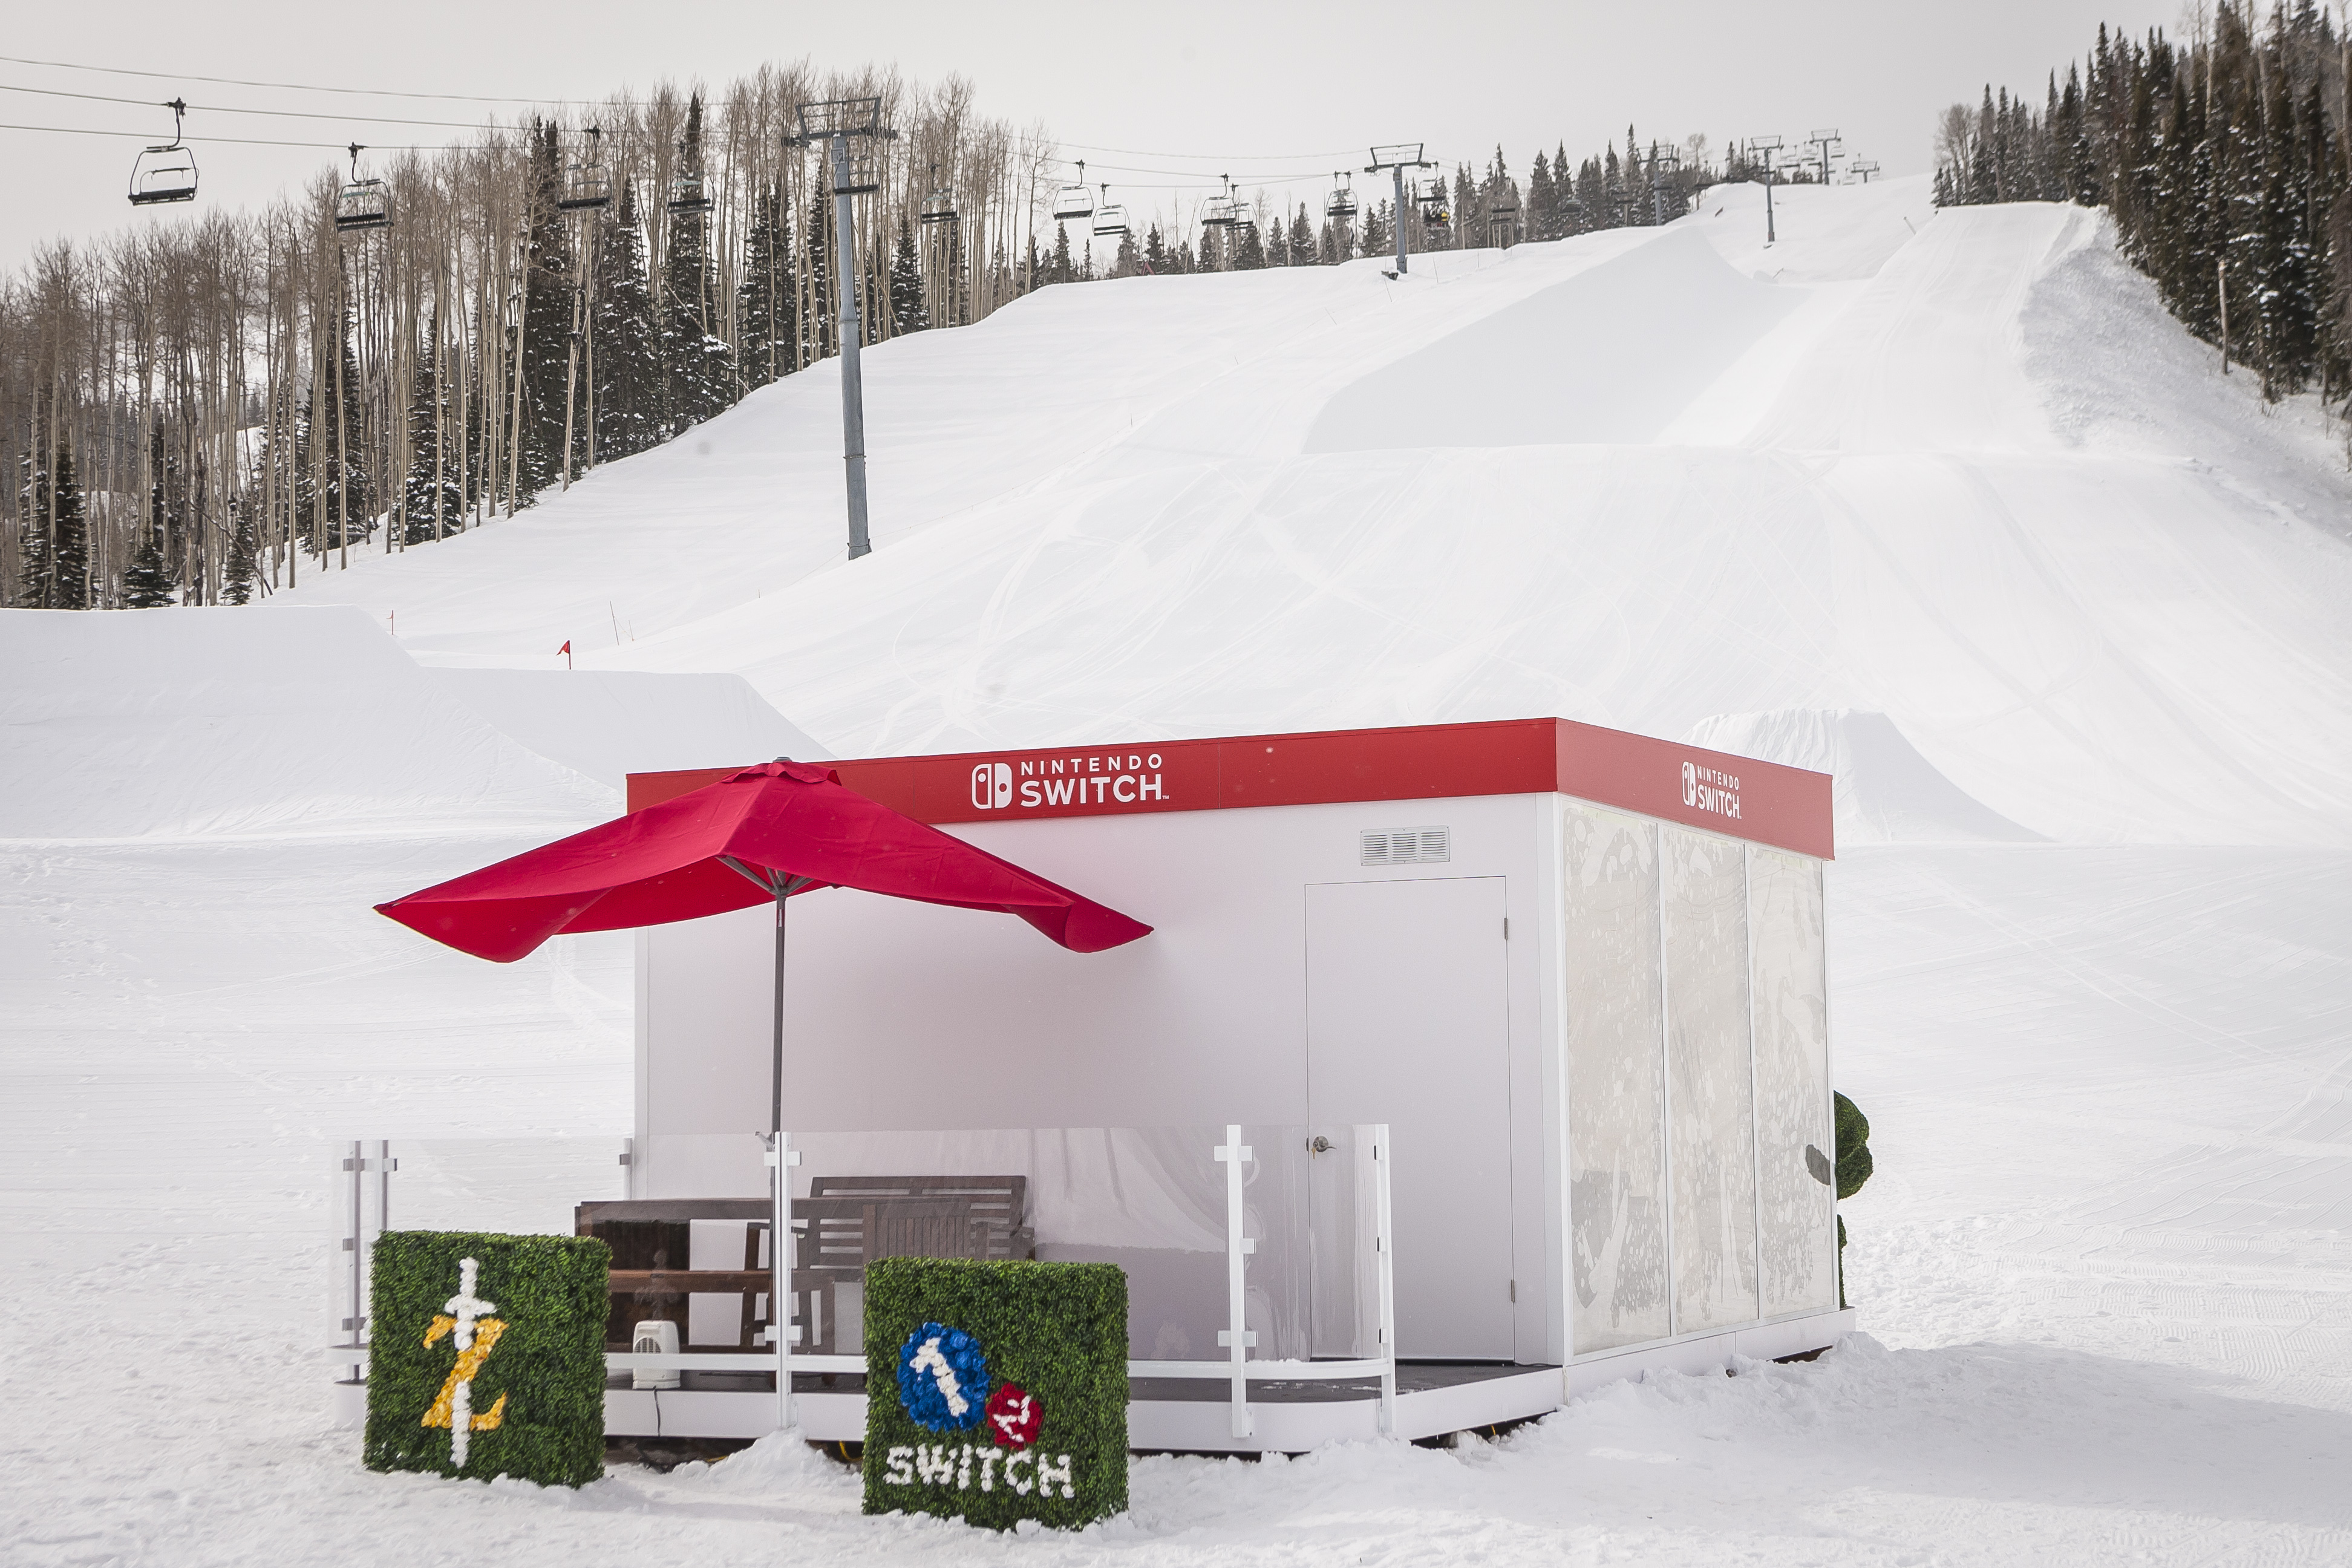 In this photo provided by Nintendo of America, the Nintendo Switch in Unexpected Places is set against the backdrop of the Snowmass Ski Resort in Aspen, Colorado, on Feb. 27. The versatility of the Nintendo Switch system allows consumers to play in a variety of settings, from the comfort of their own living room to any location imaginable. The new Nintendo Switch home gaming system launches worldwide on March 3. (Photo: Nintendo of America)